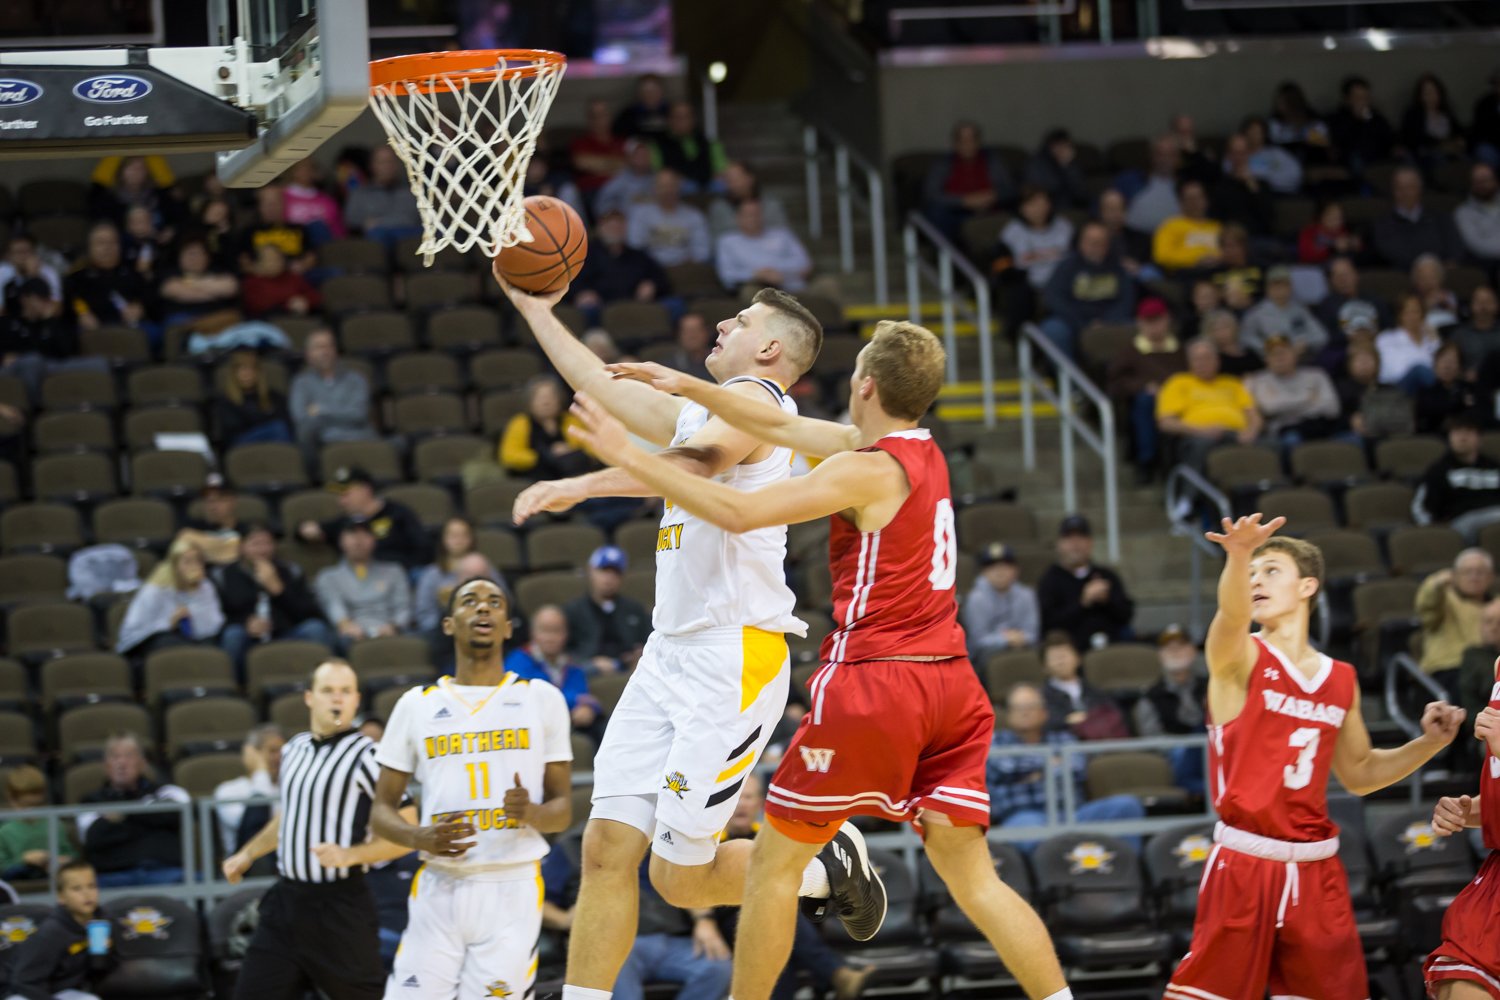 Drew McDonald (34) goes up for a shot during the game against Wabash. McDonald had 10 points on the game.